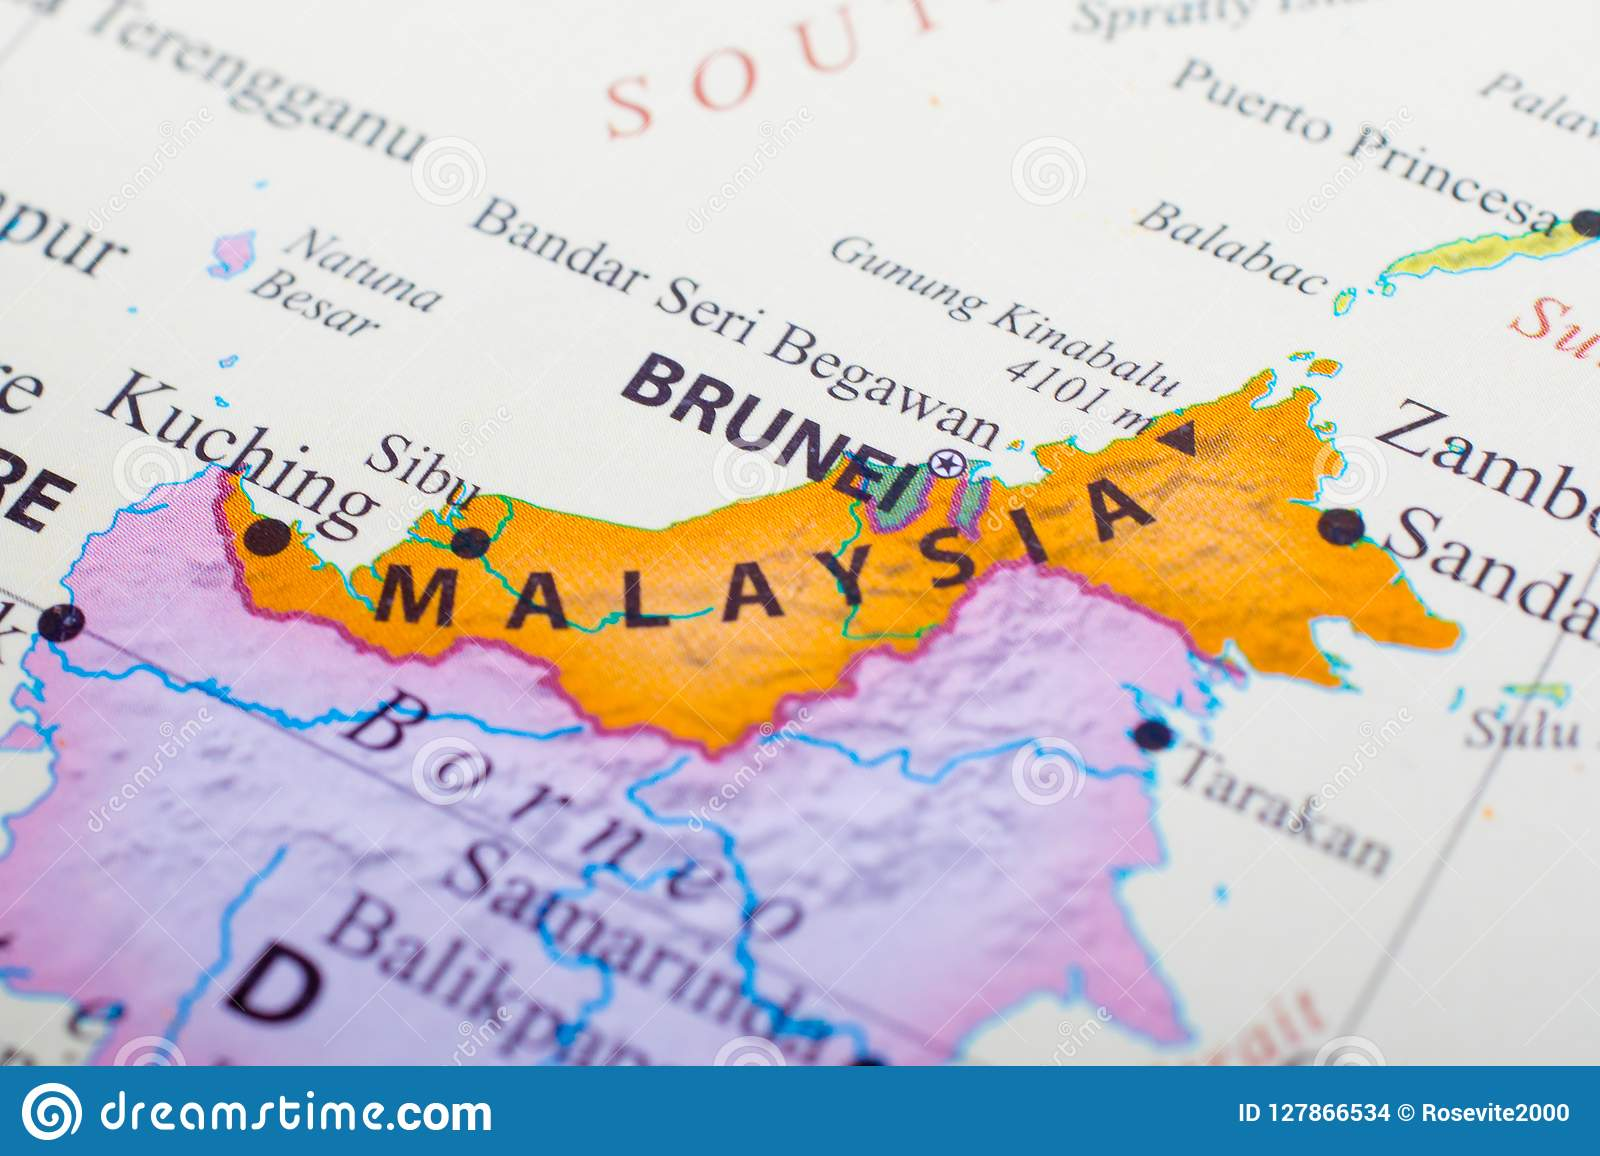 Map Of Asia Brunei.Map Of Part Of Malaysia Beside Brunei Stock Photo Image Of Colombo